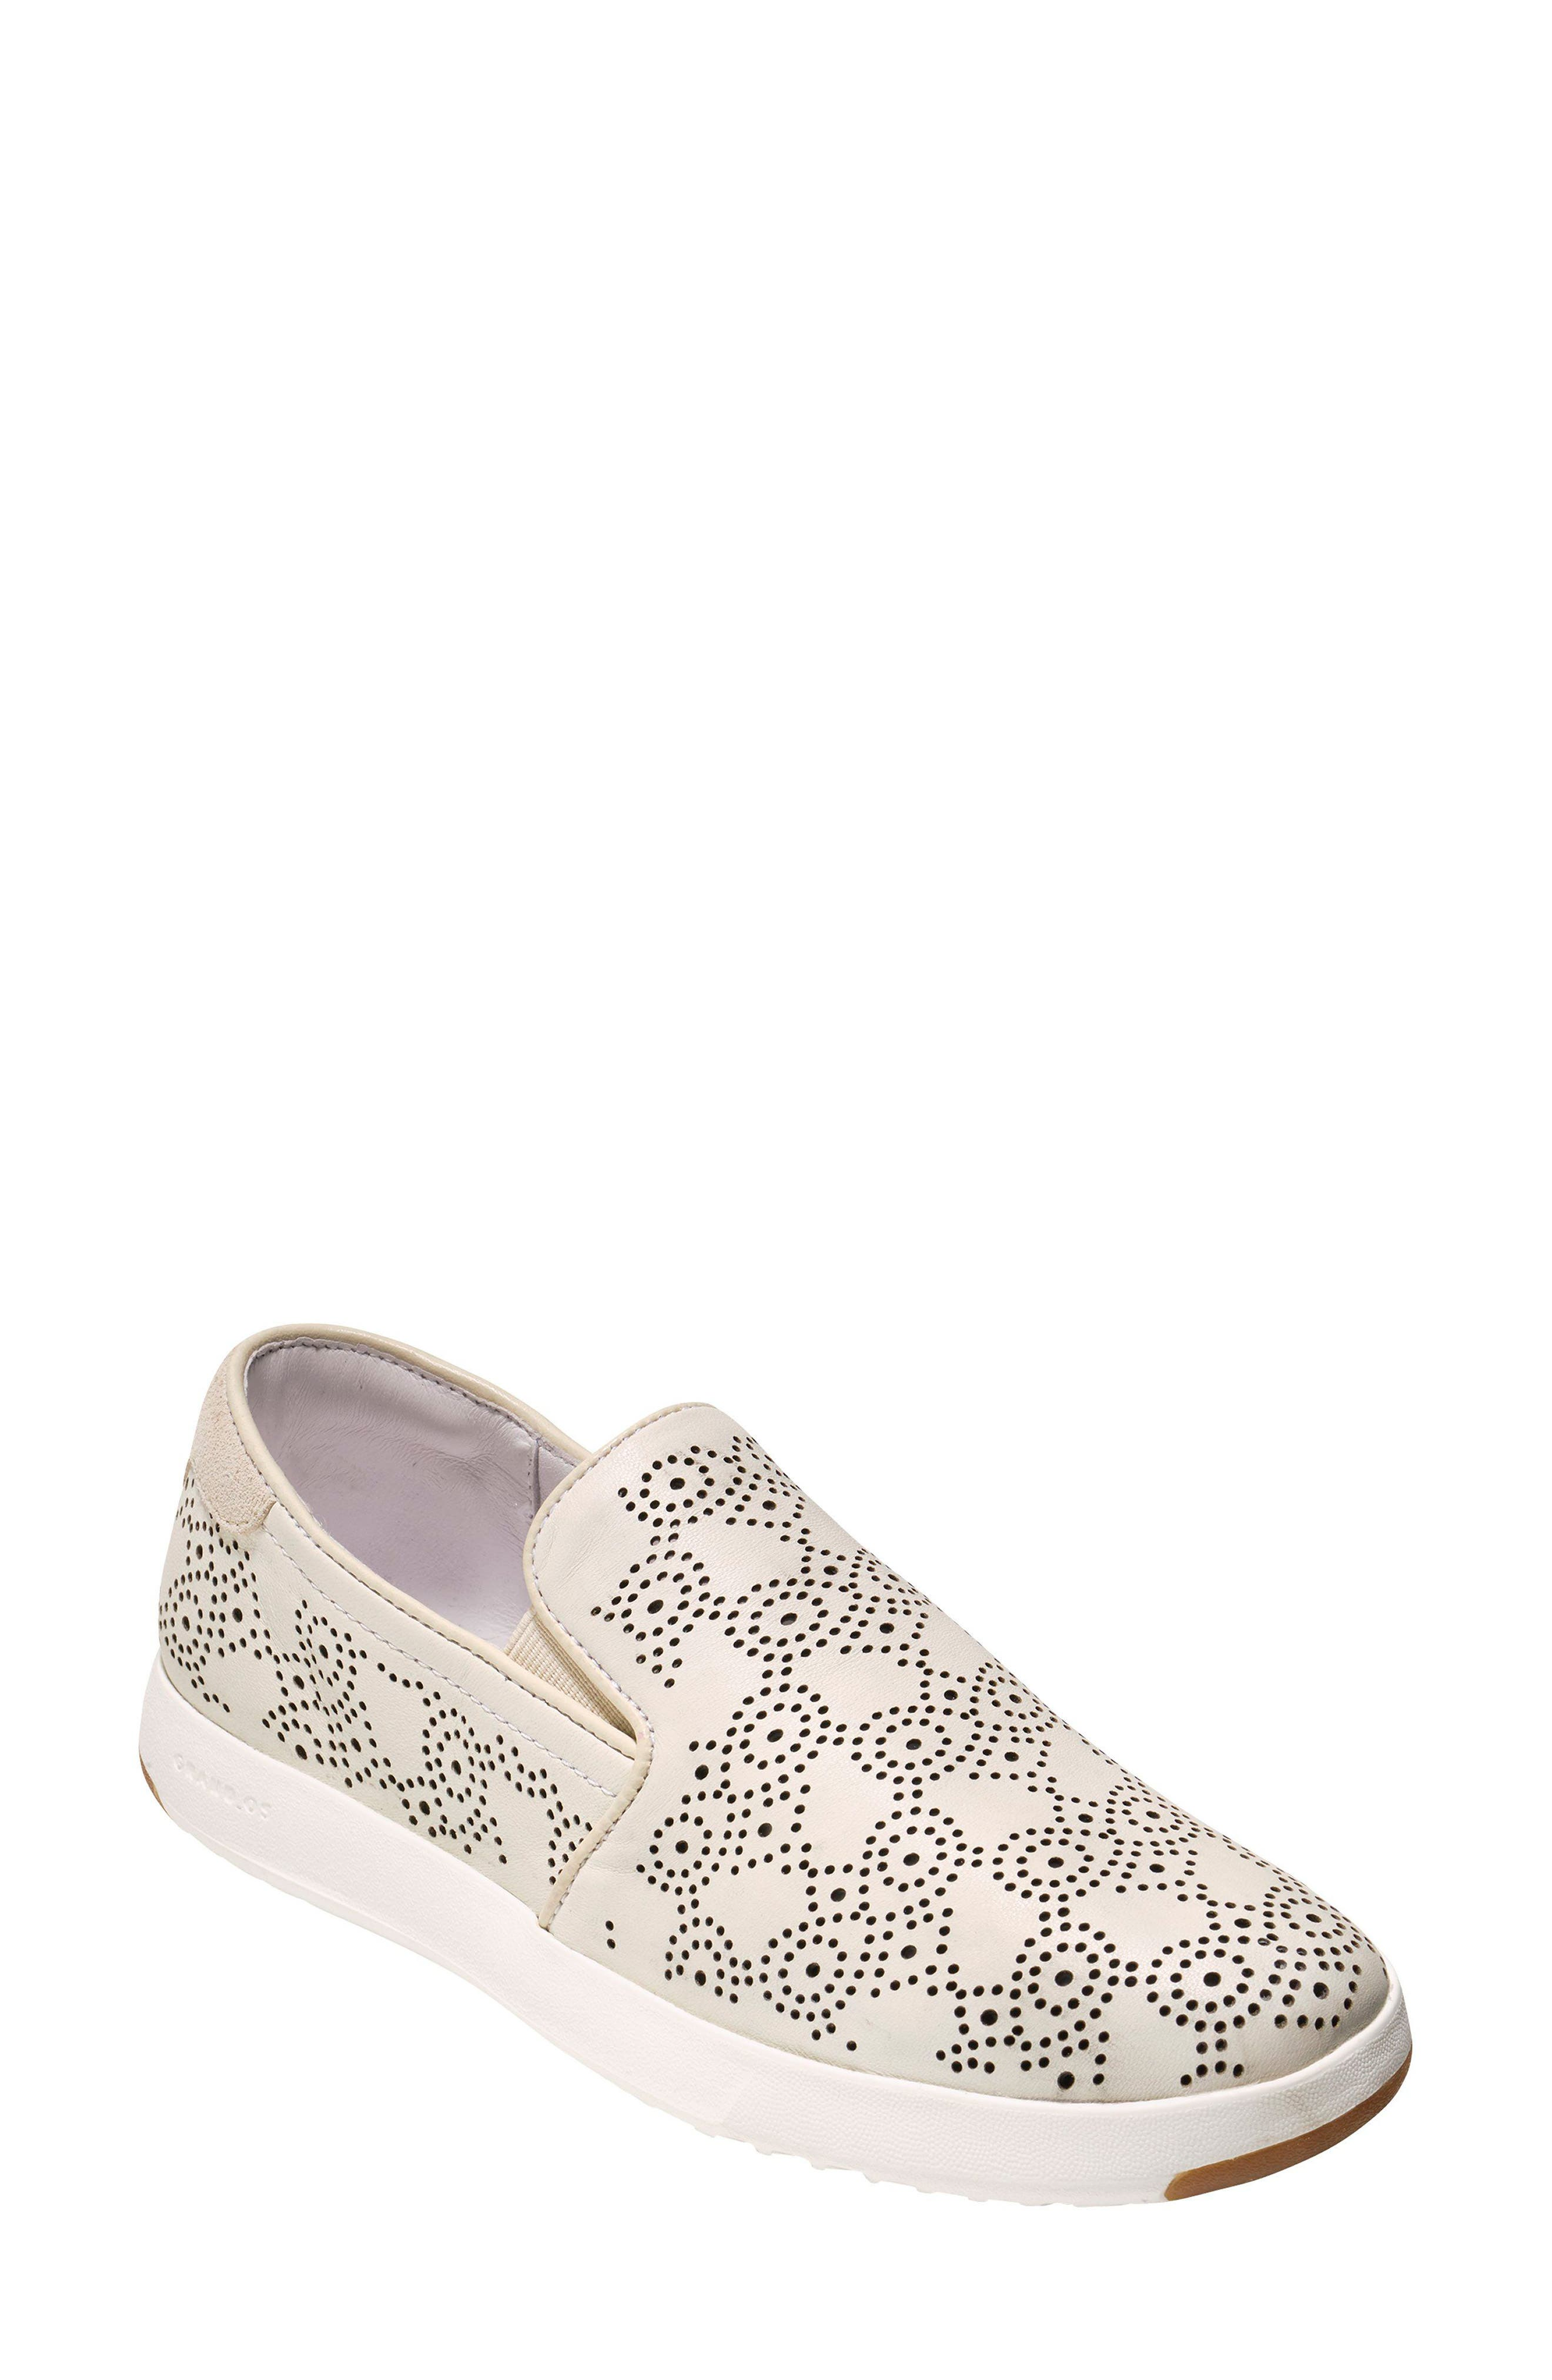 GrandPro Perforated Slip-On Sneaker,                         Main,                         color,